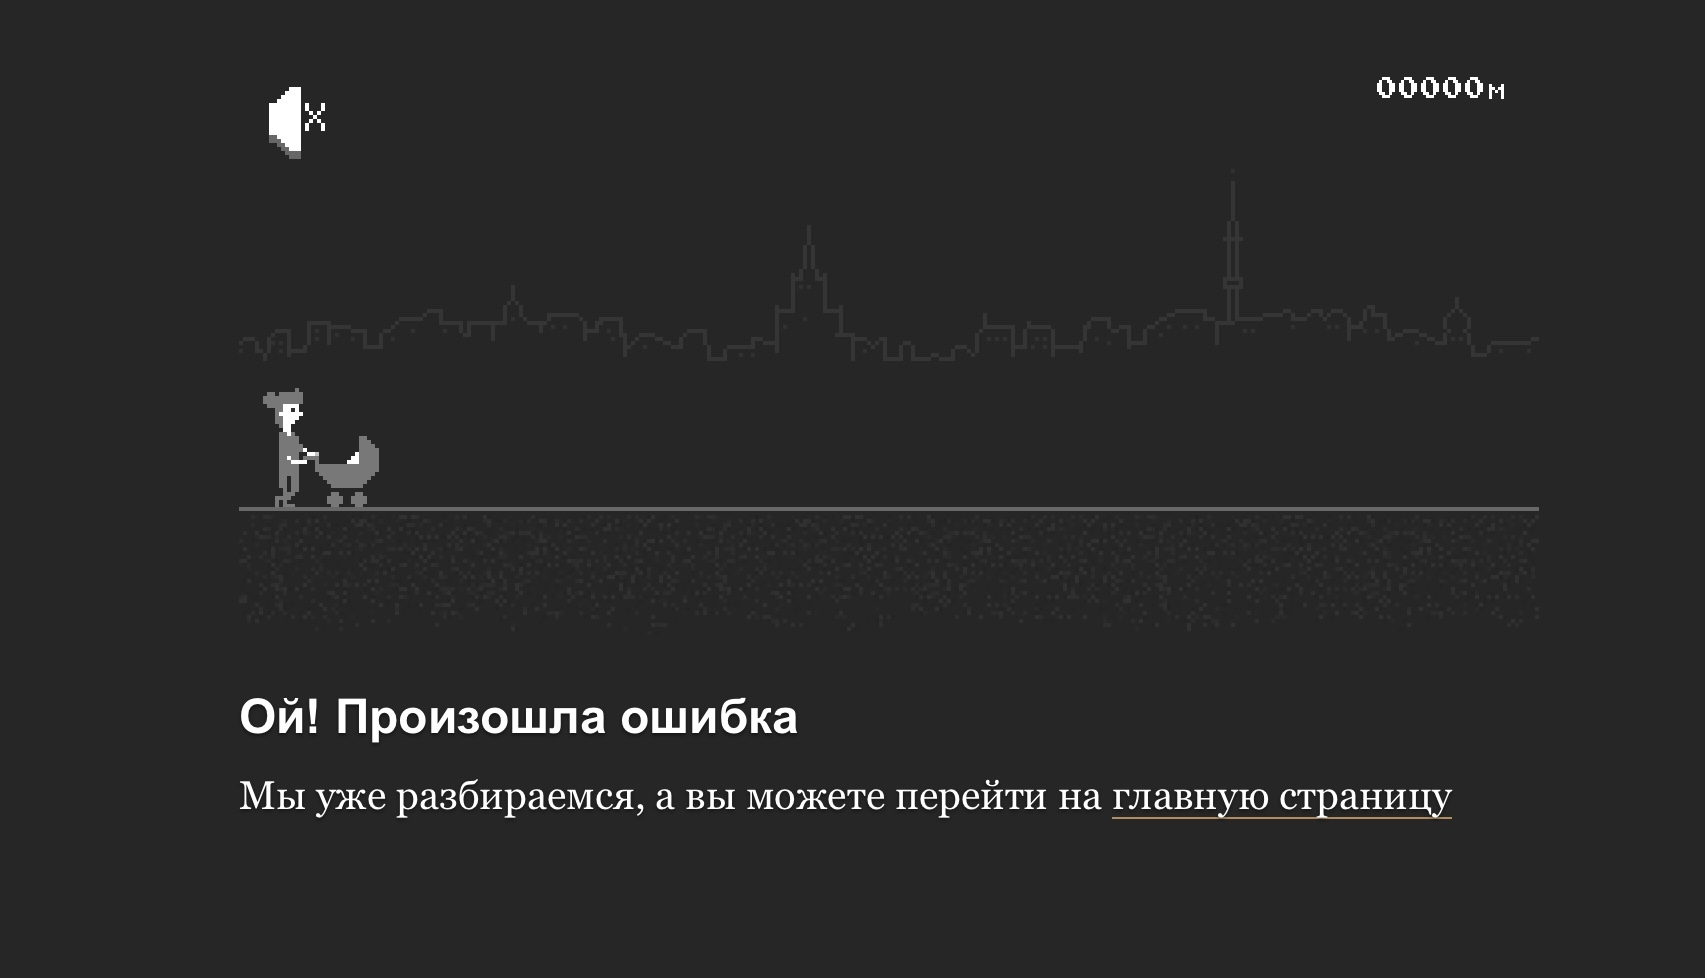 Russia Declares Independent News Site Meduza a Foreign Agent-10eb20a2-a5e4-44fe-8077-679ab3b5bba0-jpeg